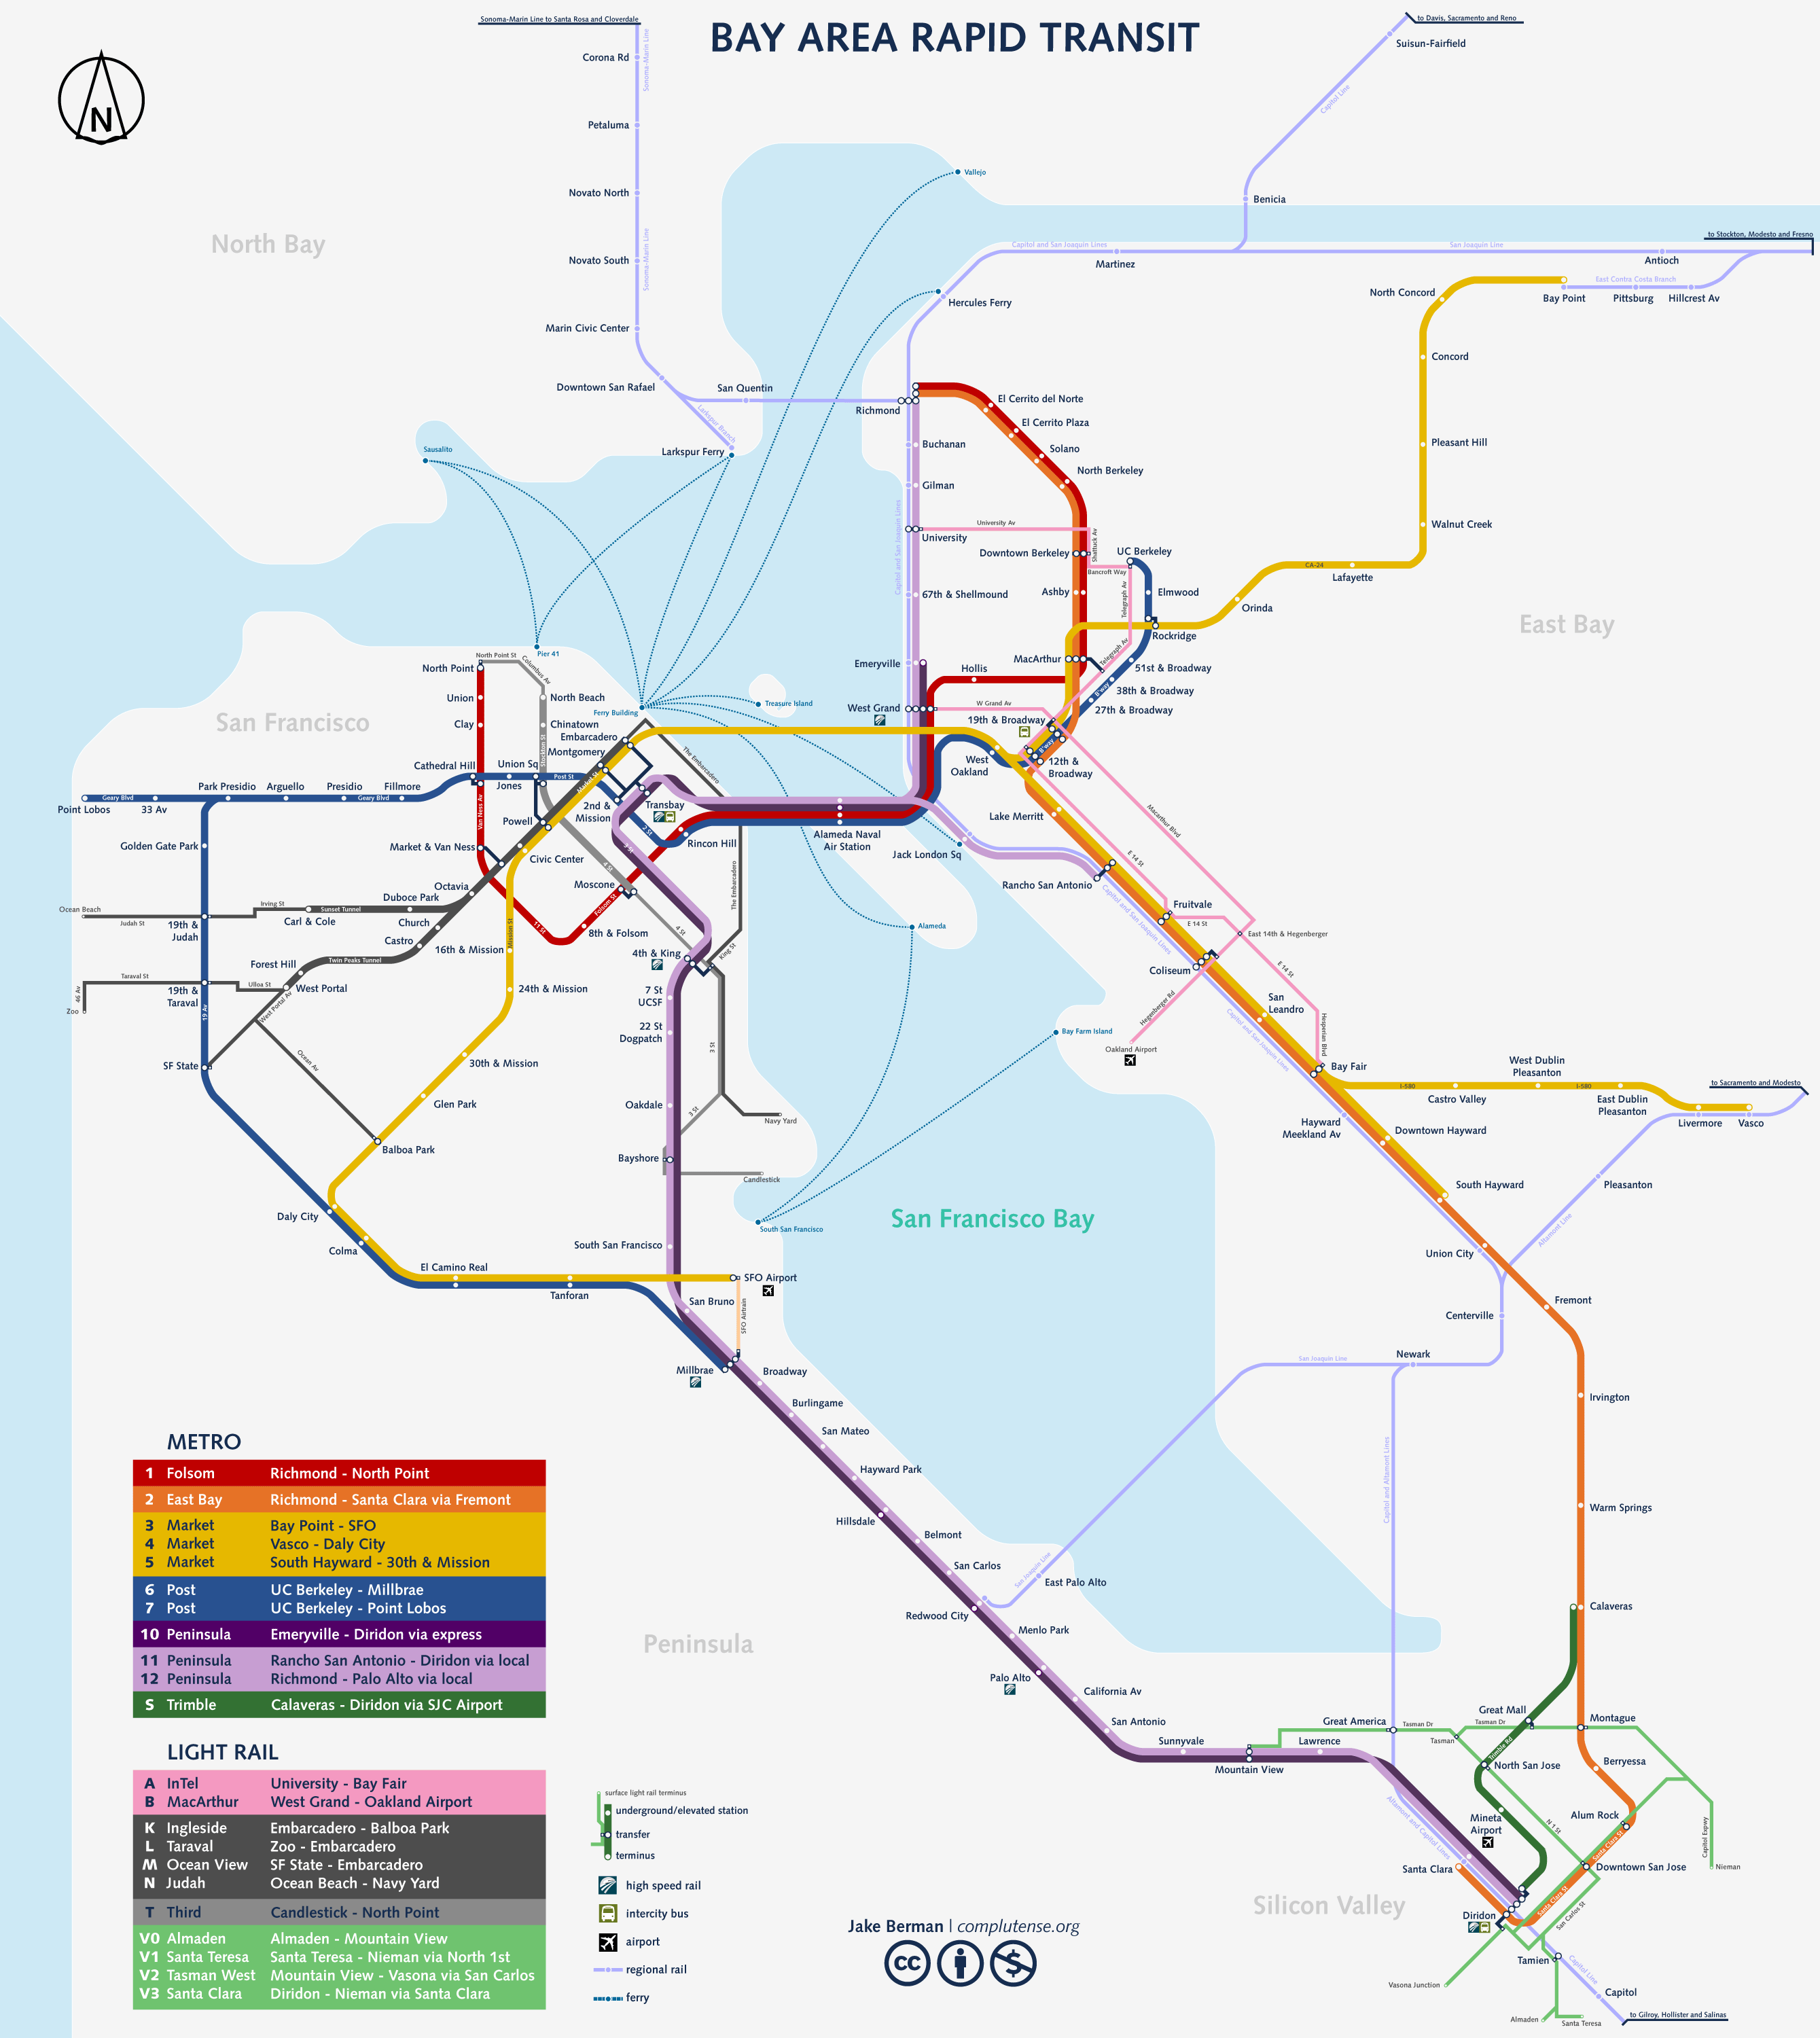 studio complutense » subway maps  san francisco bay area   - san francisco bay area  the companion rapid transit diagram of the bayarea